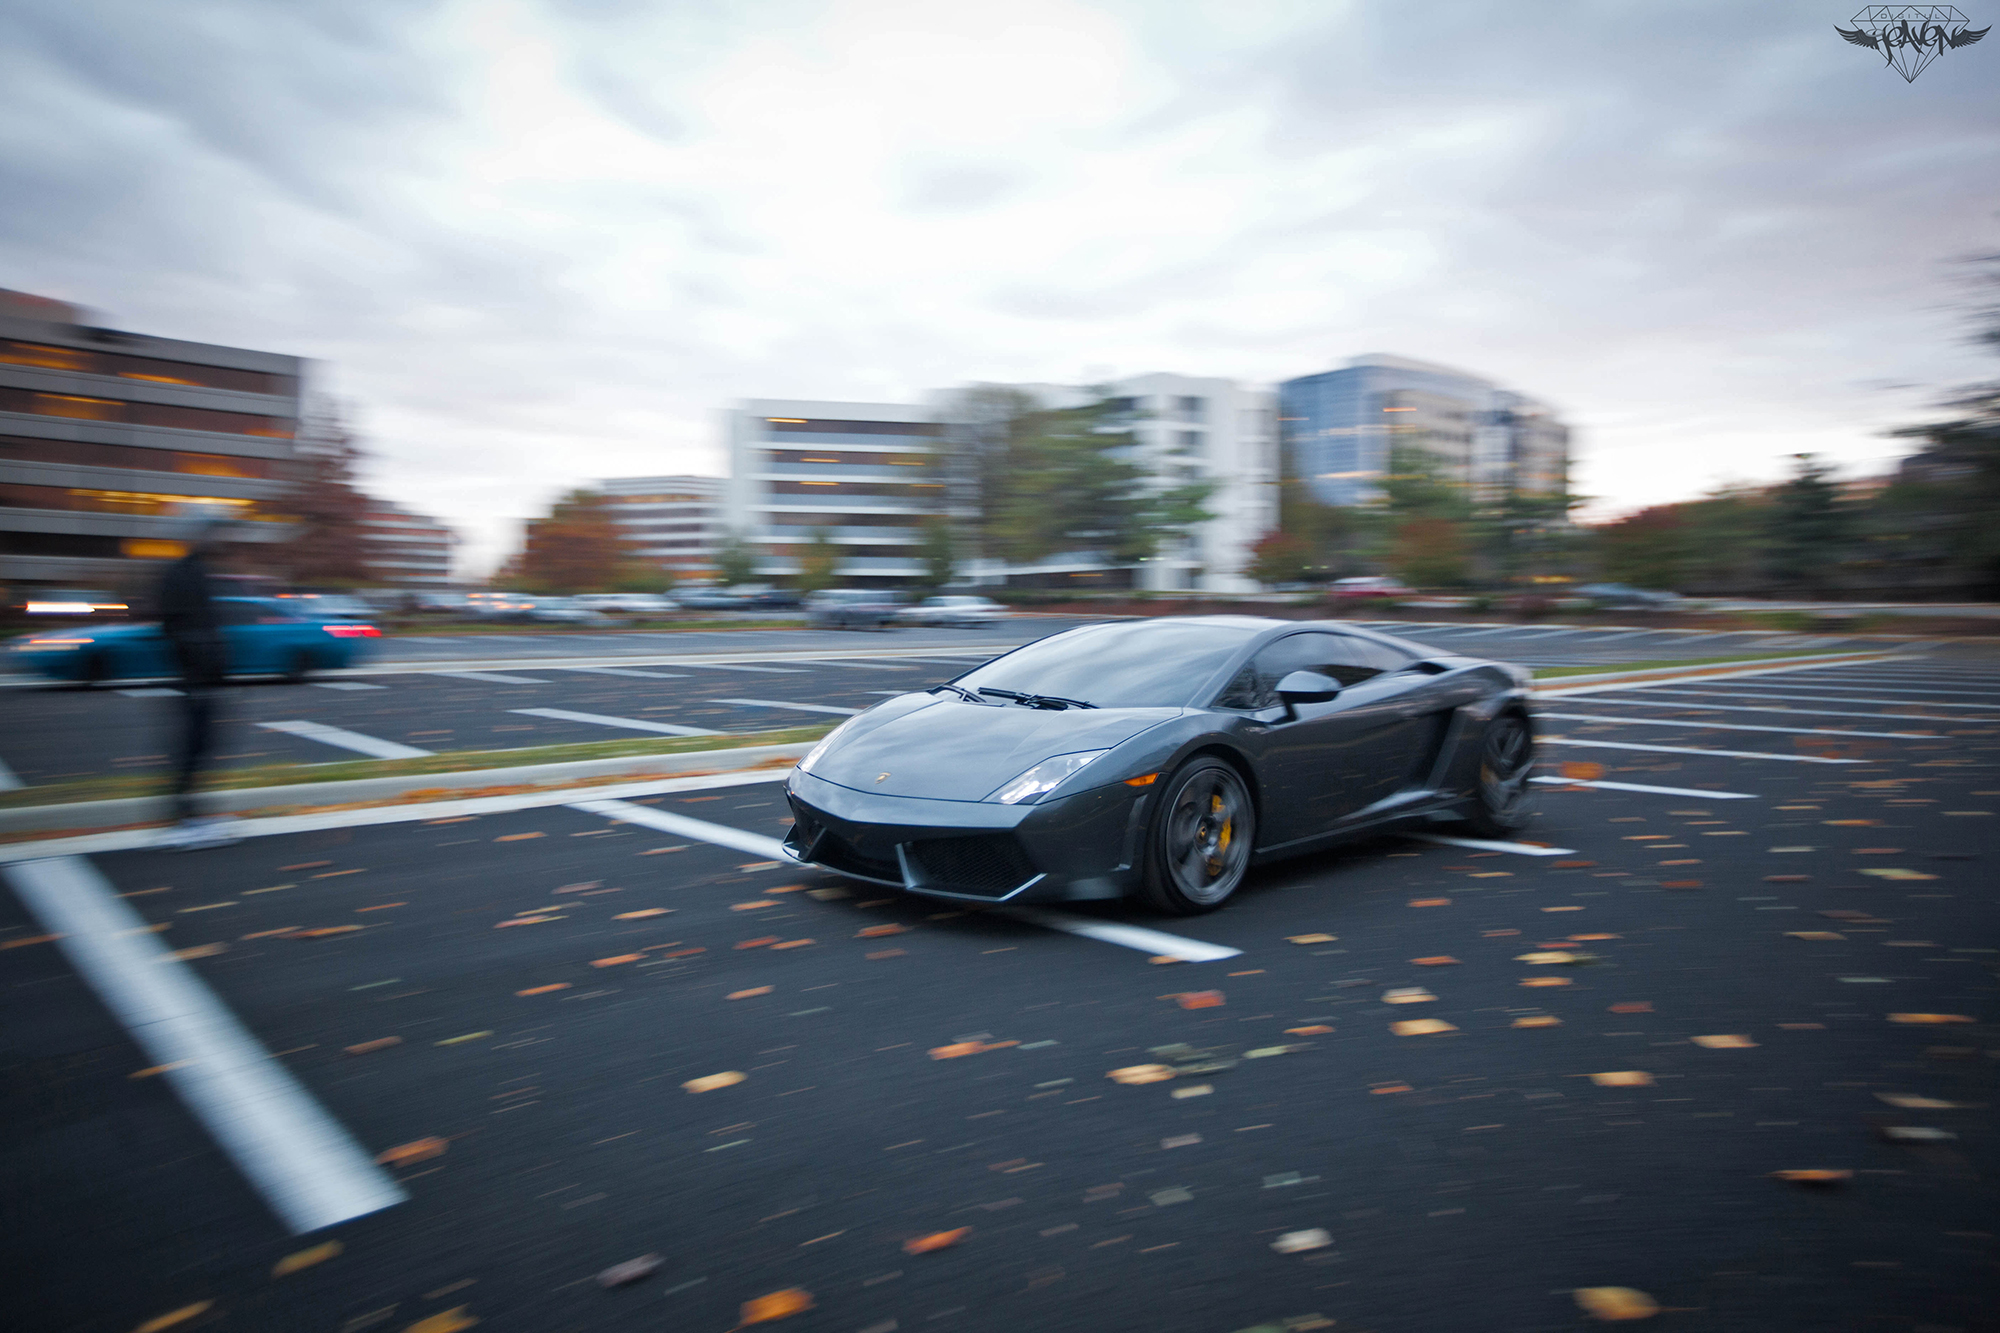 Cold day, warm Lamborghini